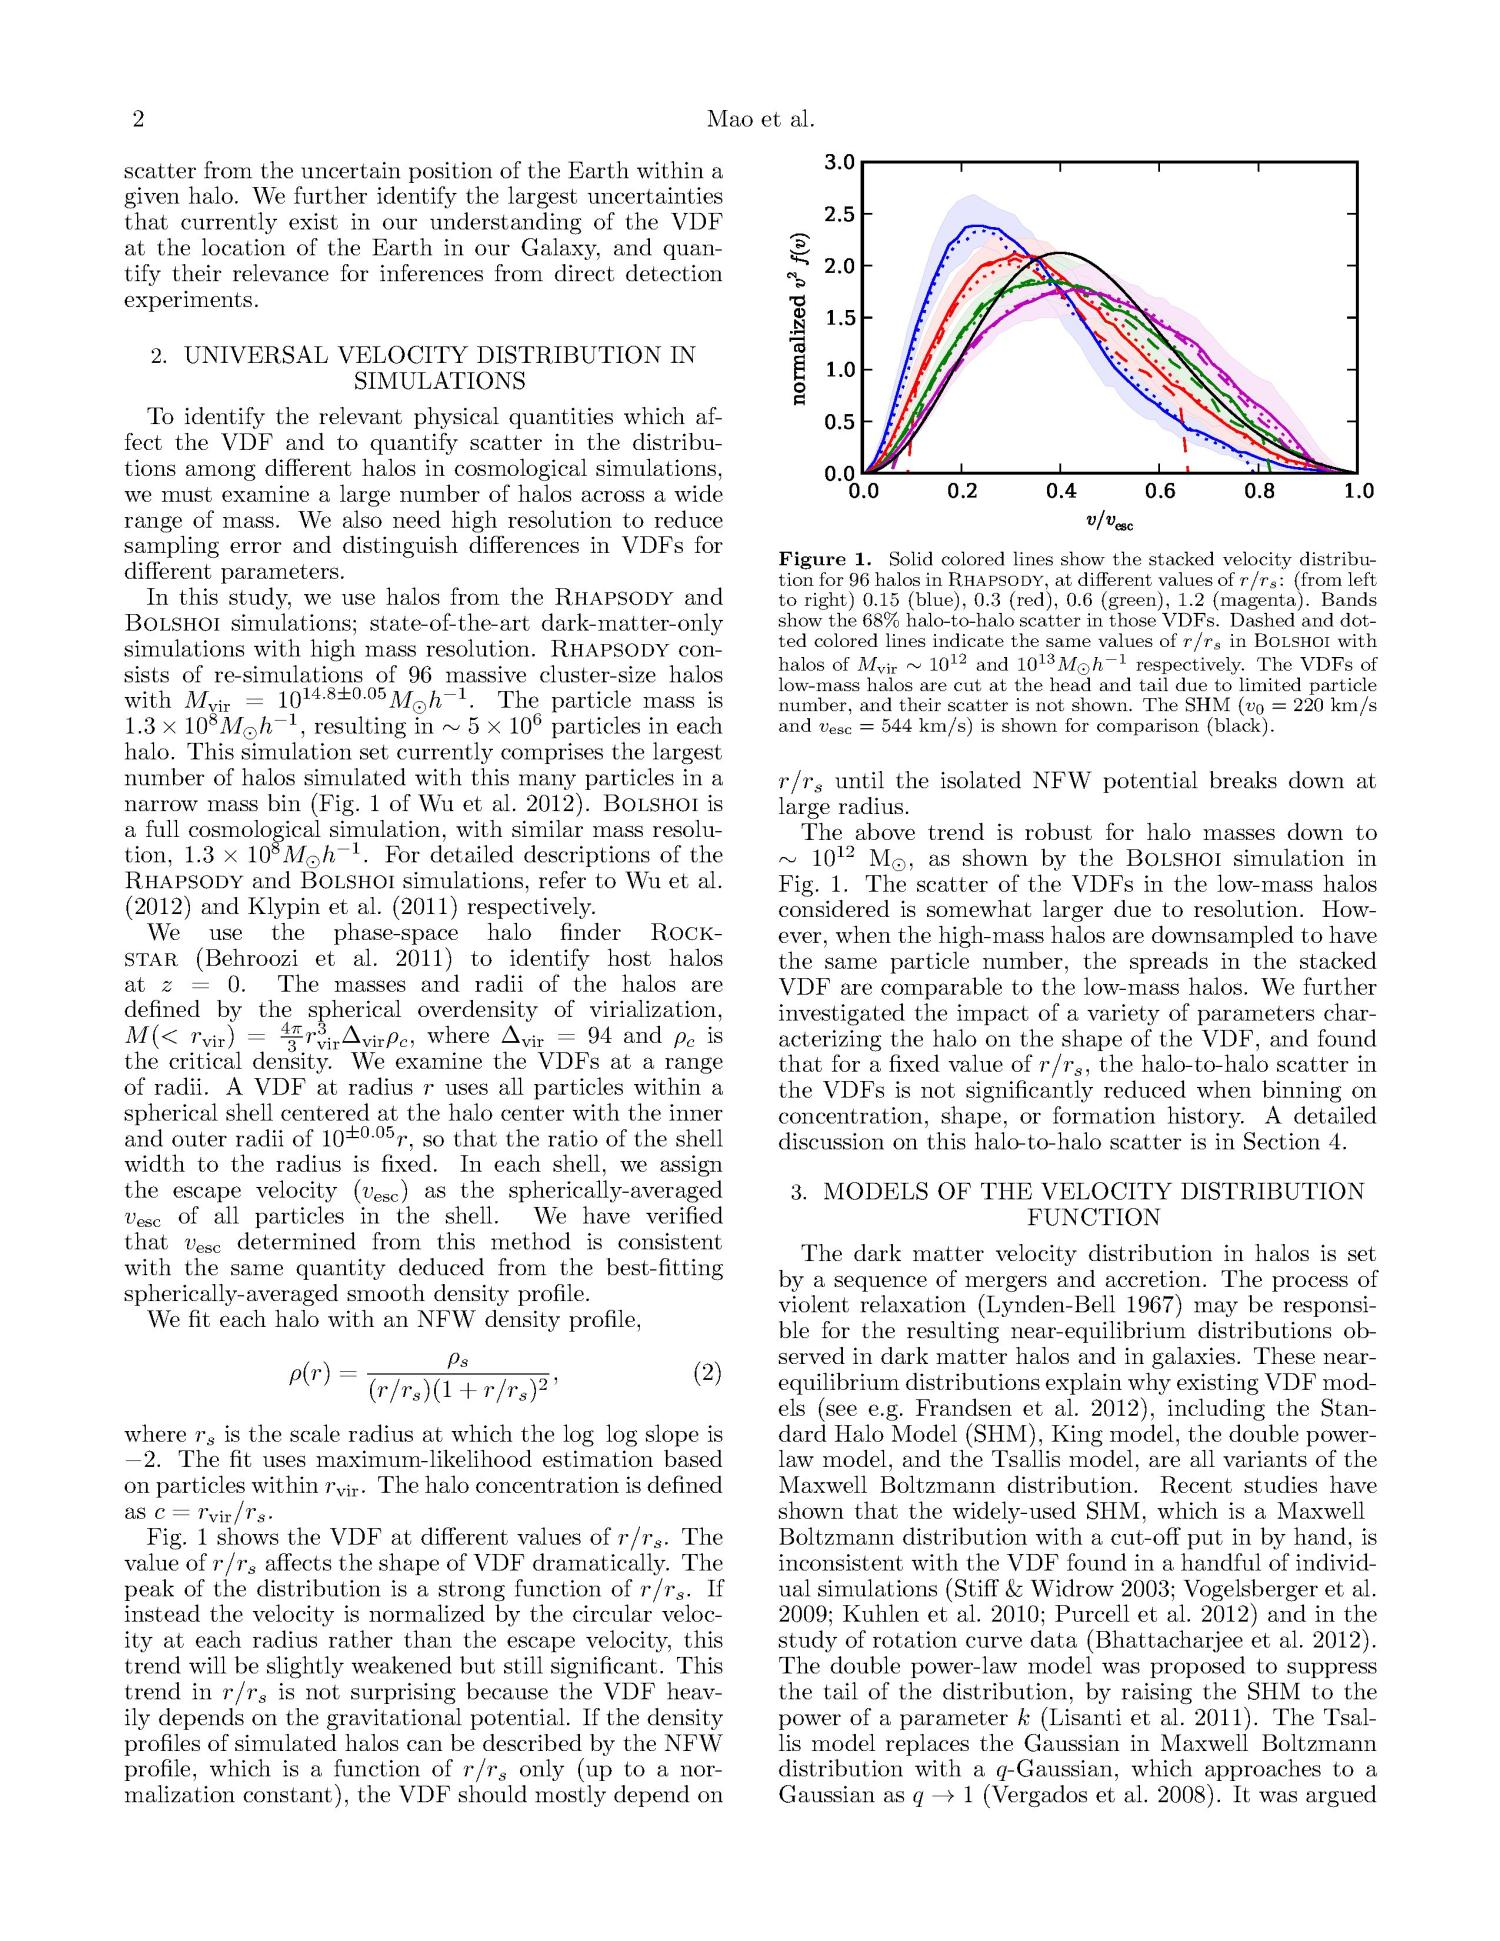 Halo-to-Halo Similarity and Scatter in the Velocity Distribution of Dark Matter                                                                                                      [Sequence #]: 2 of 6